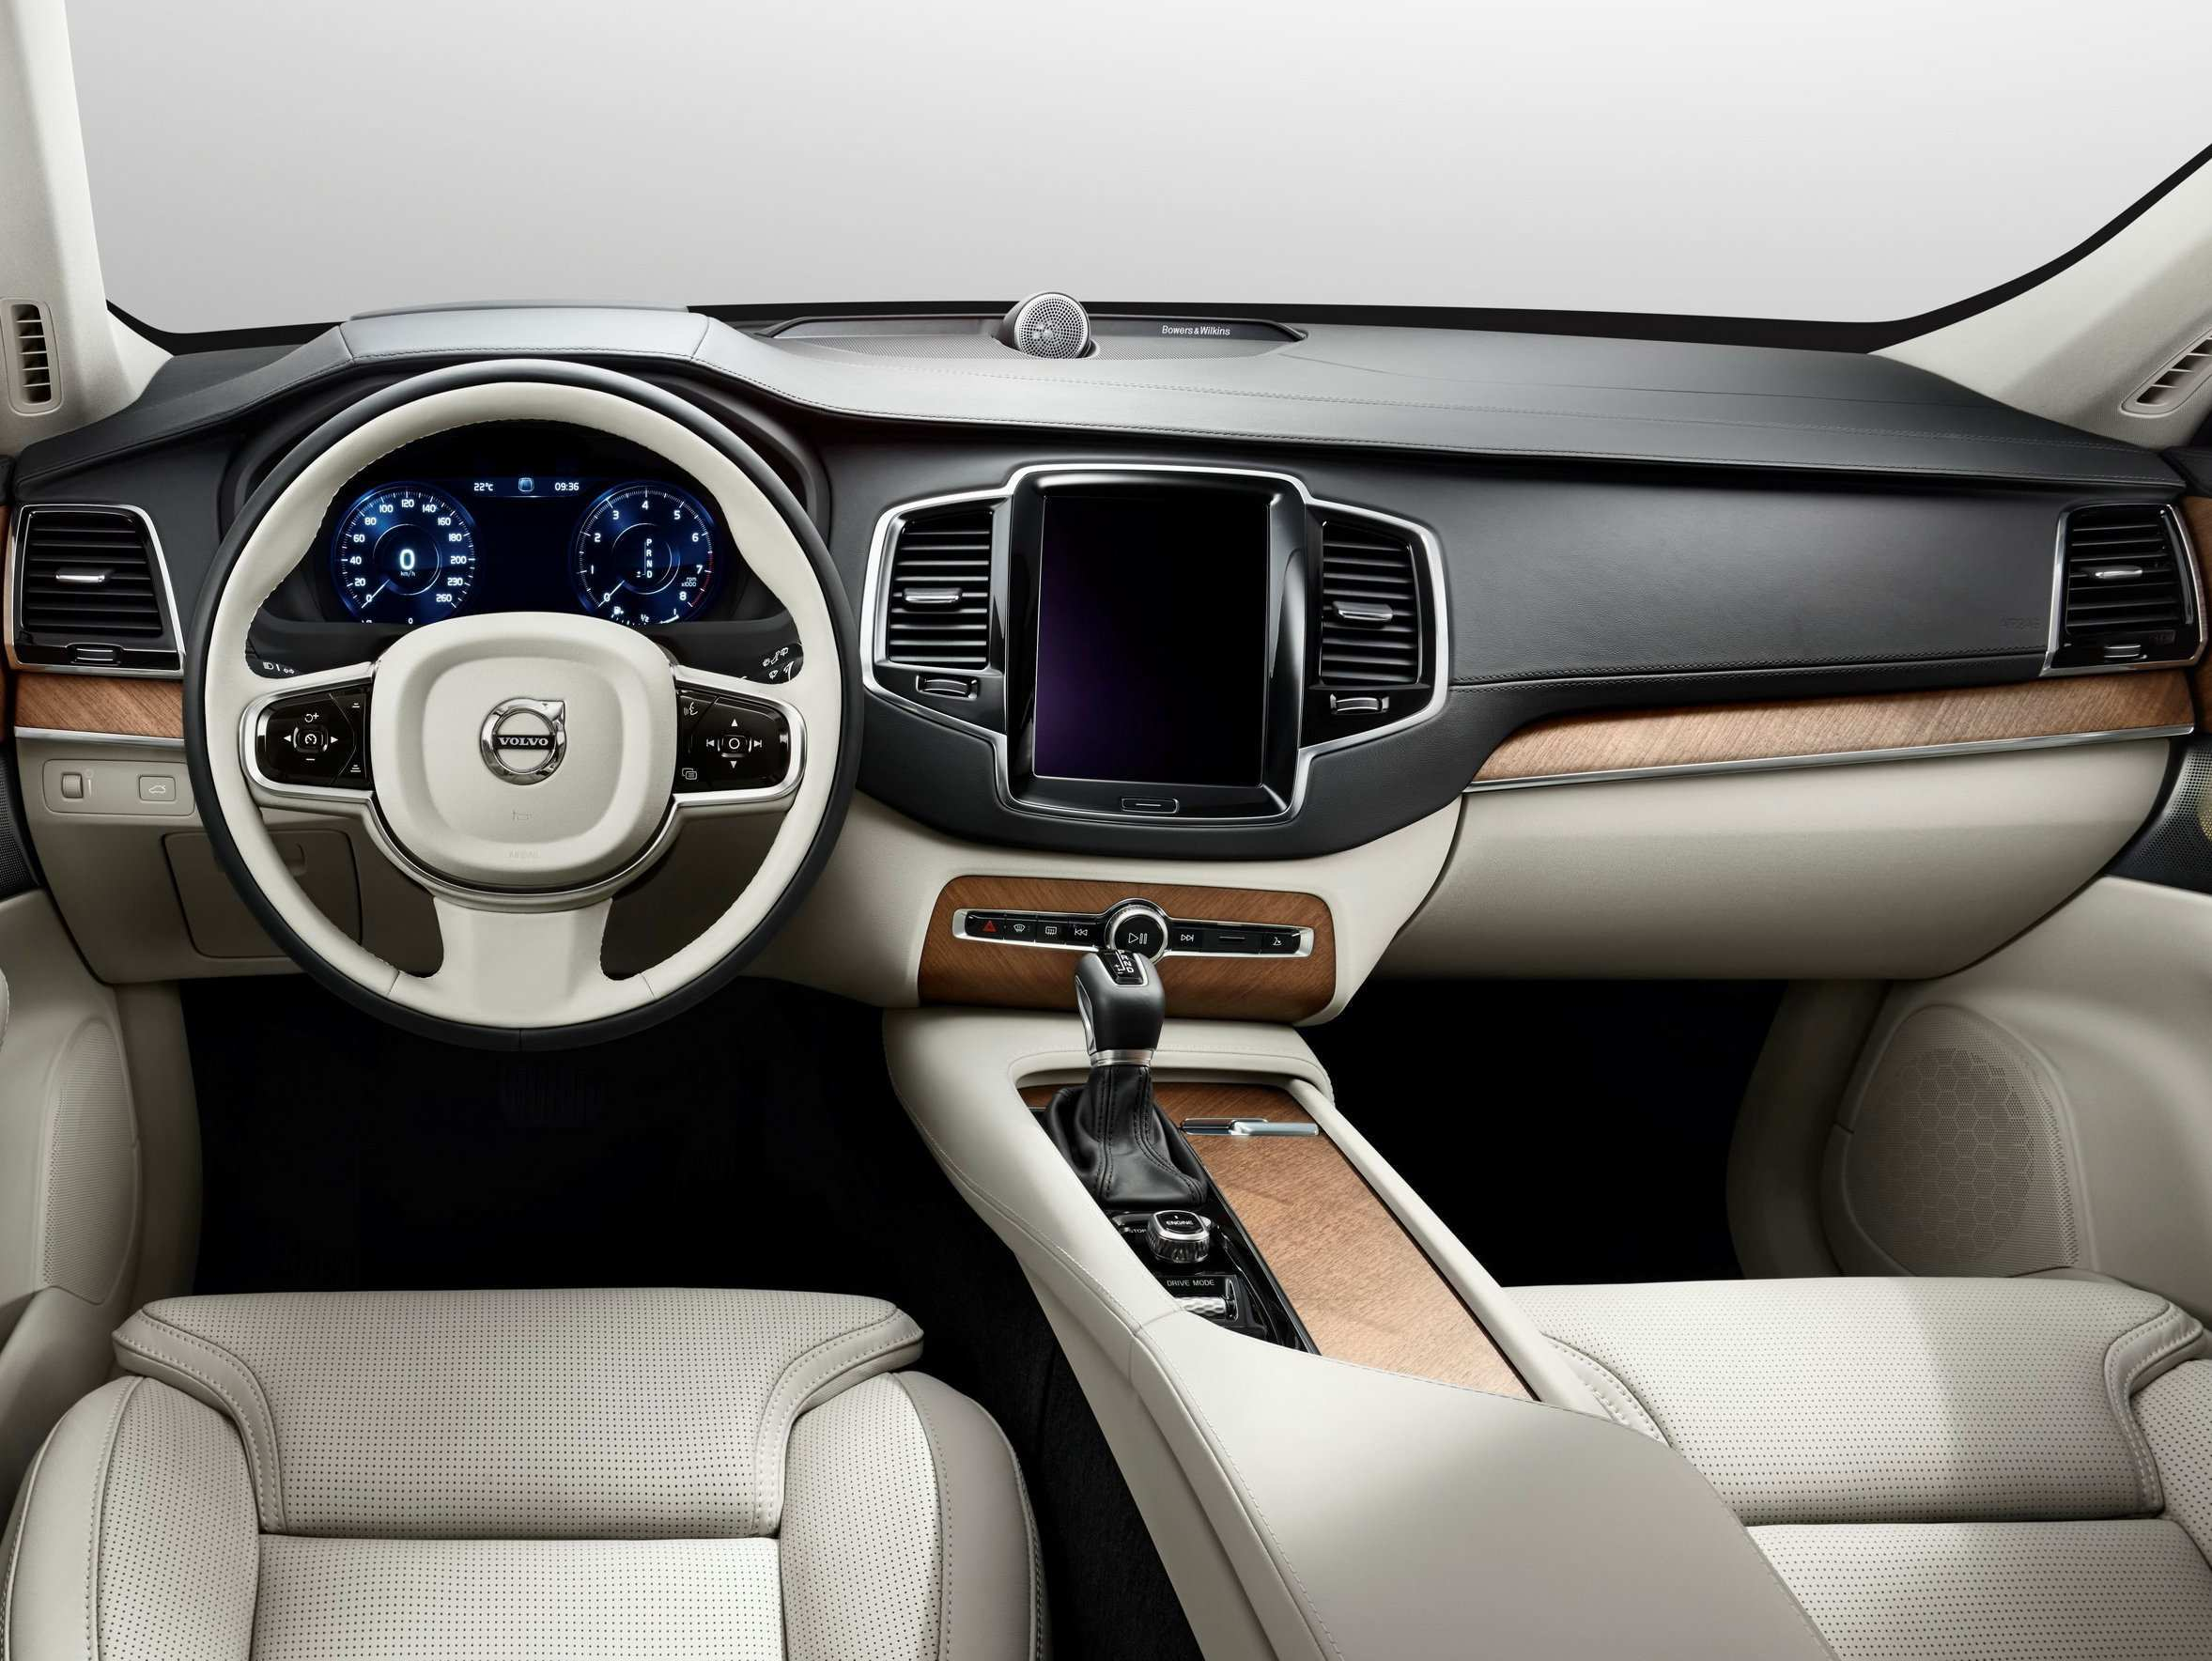 93 A Volvo Xc90 2019 Interior Release Date And Concept